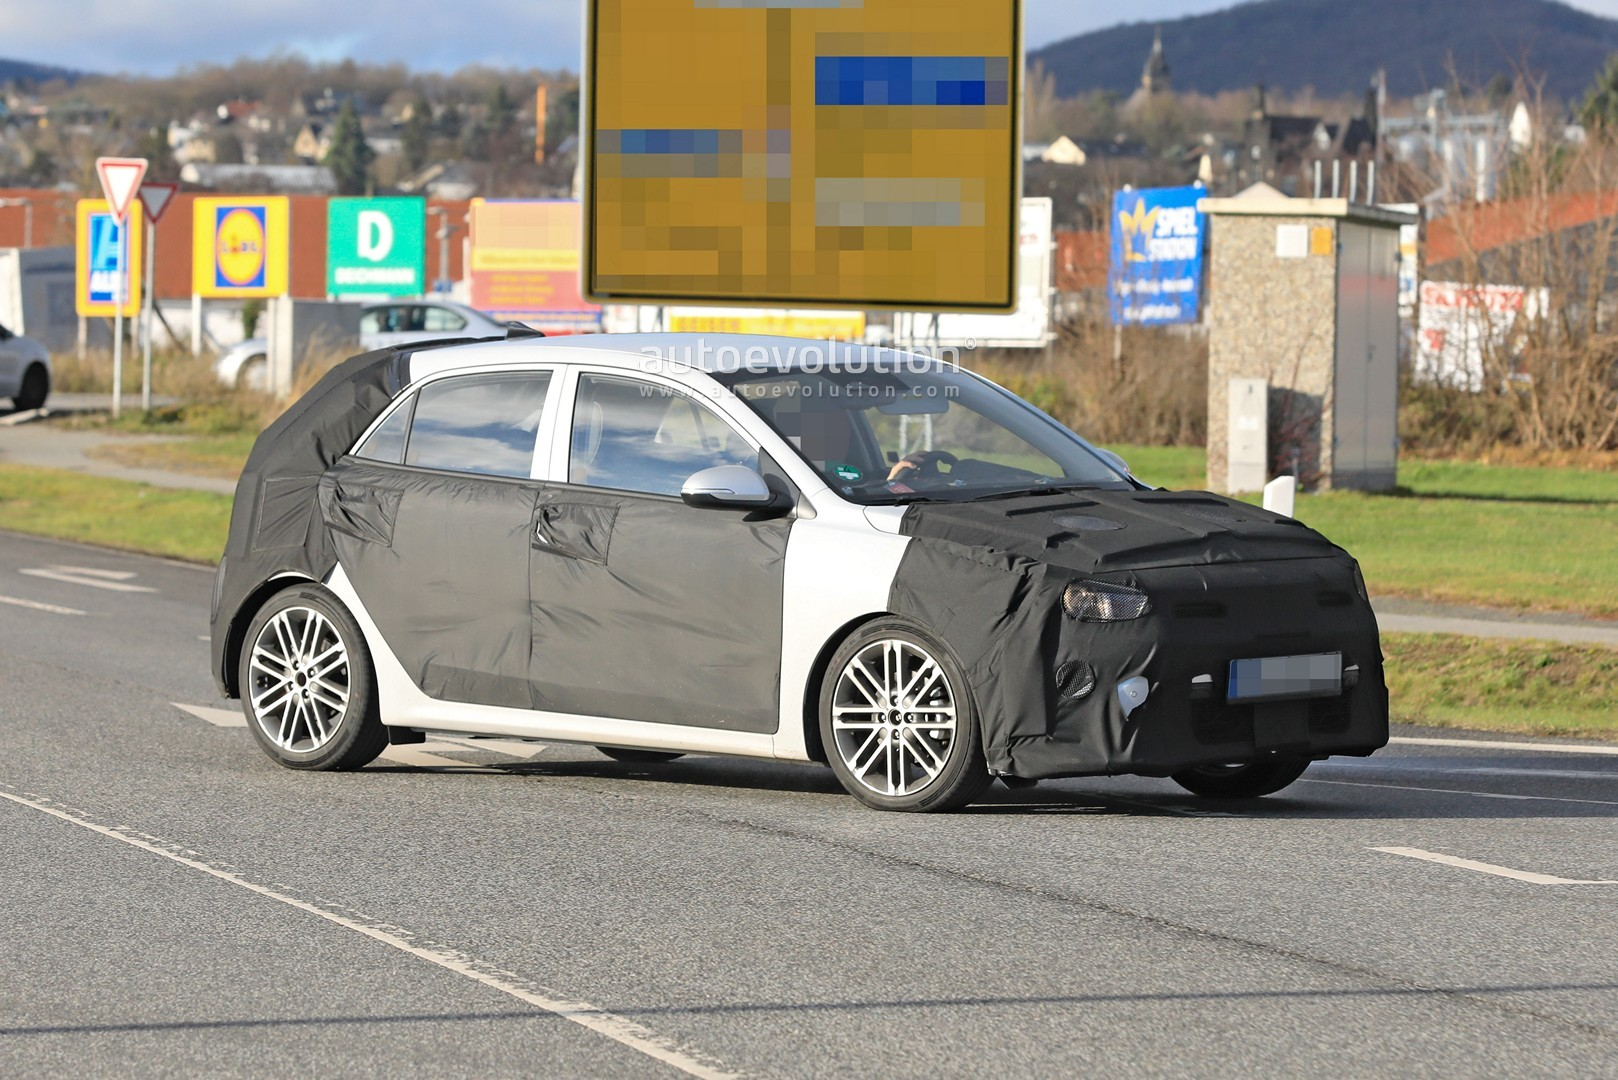 2021 kia rio facelift spied for the first time  autoevolution